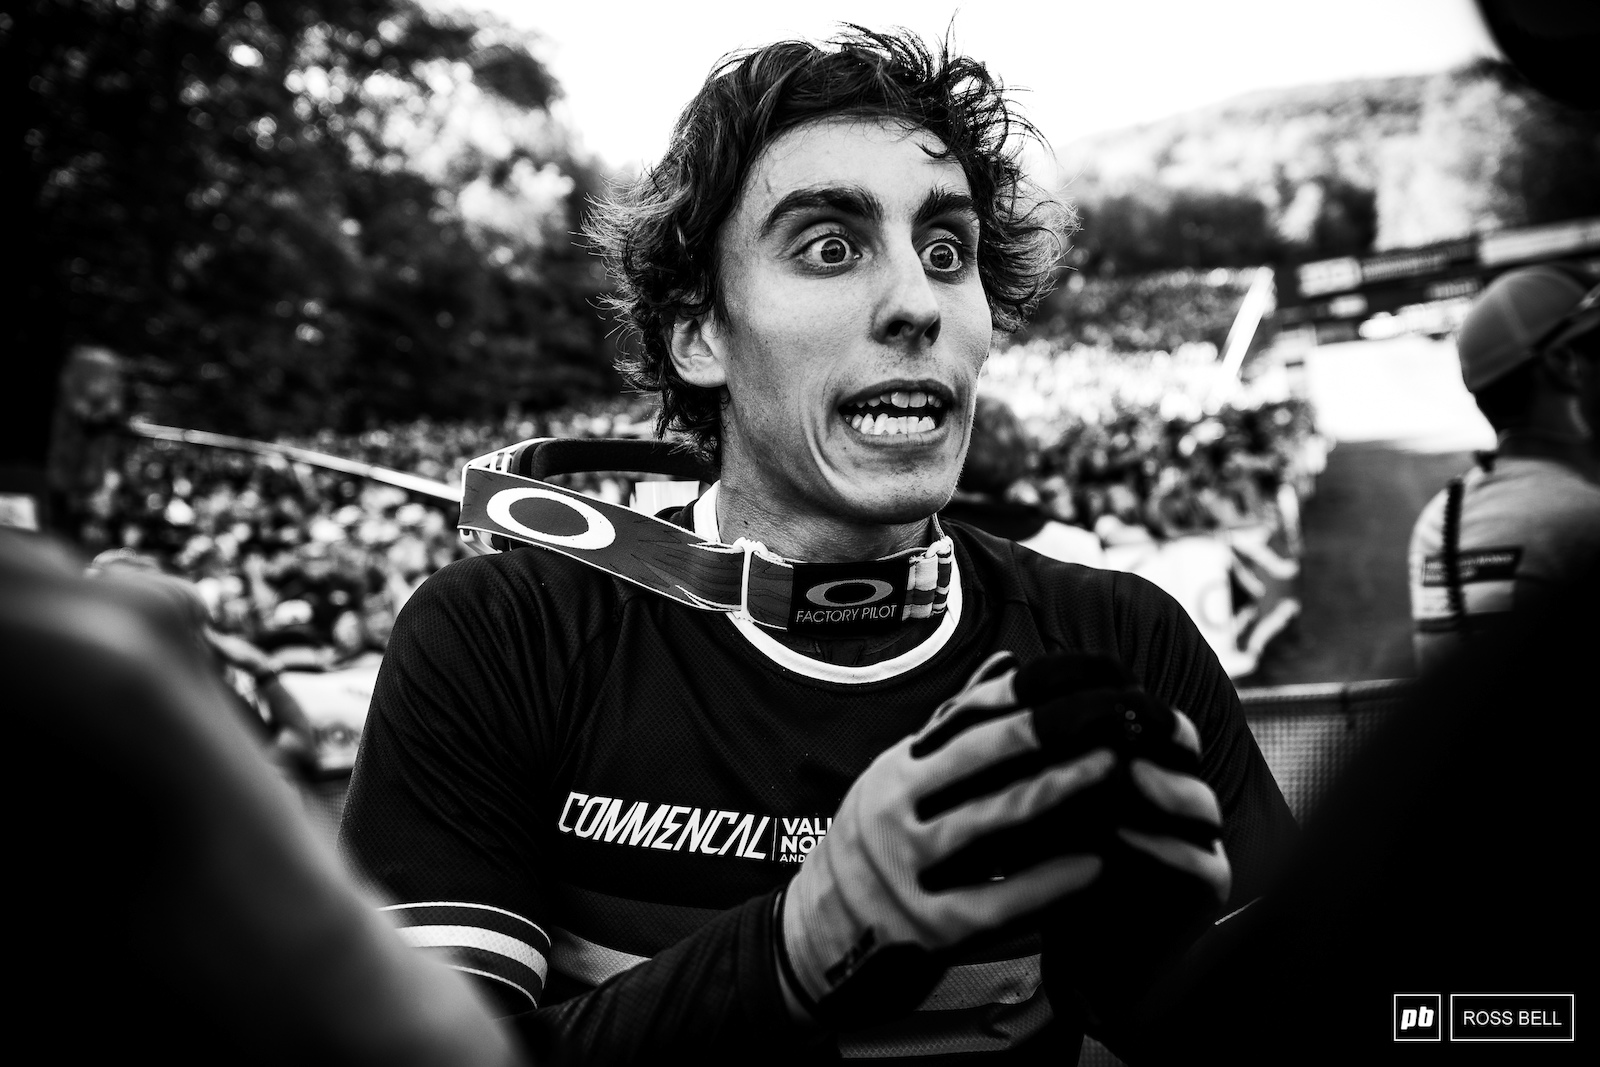 Amaury Pierron gets animated as he describes his race run antics to team mates Gatean Ruffin and Myriam Nicole.